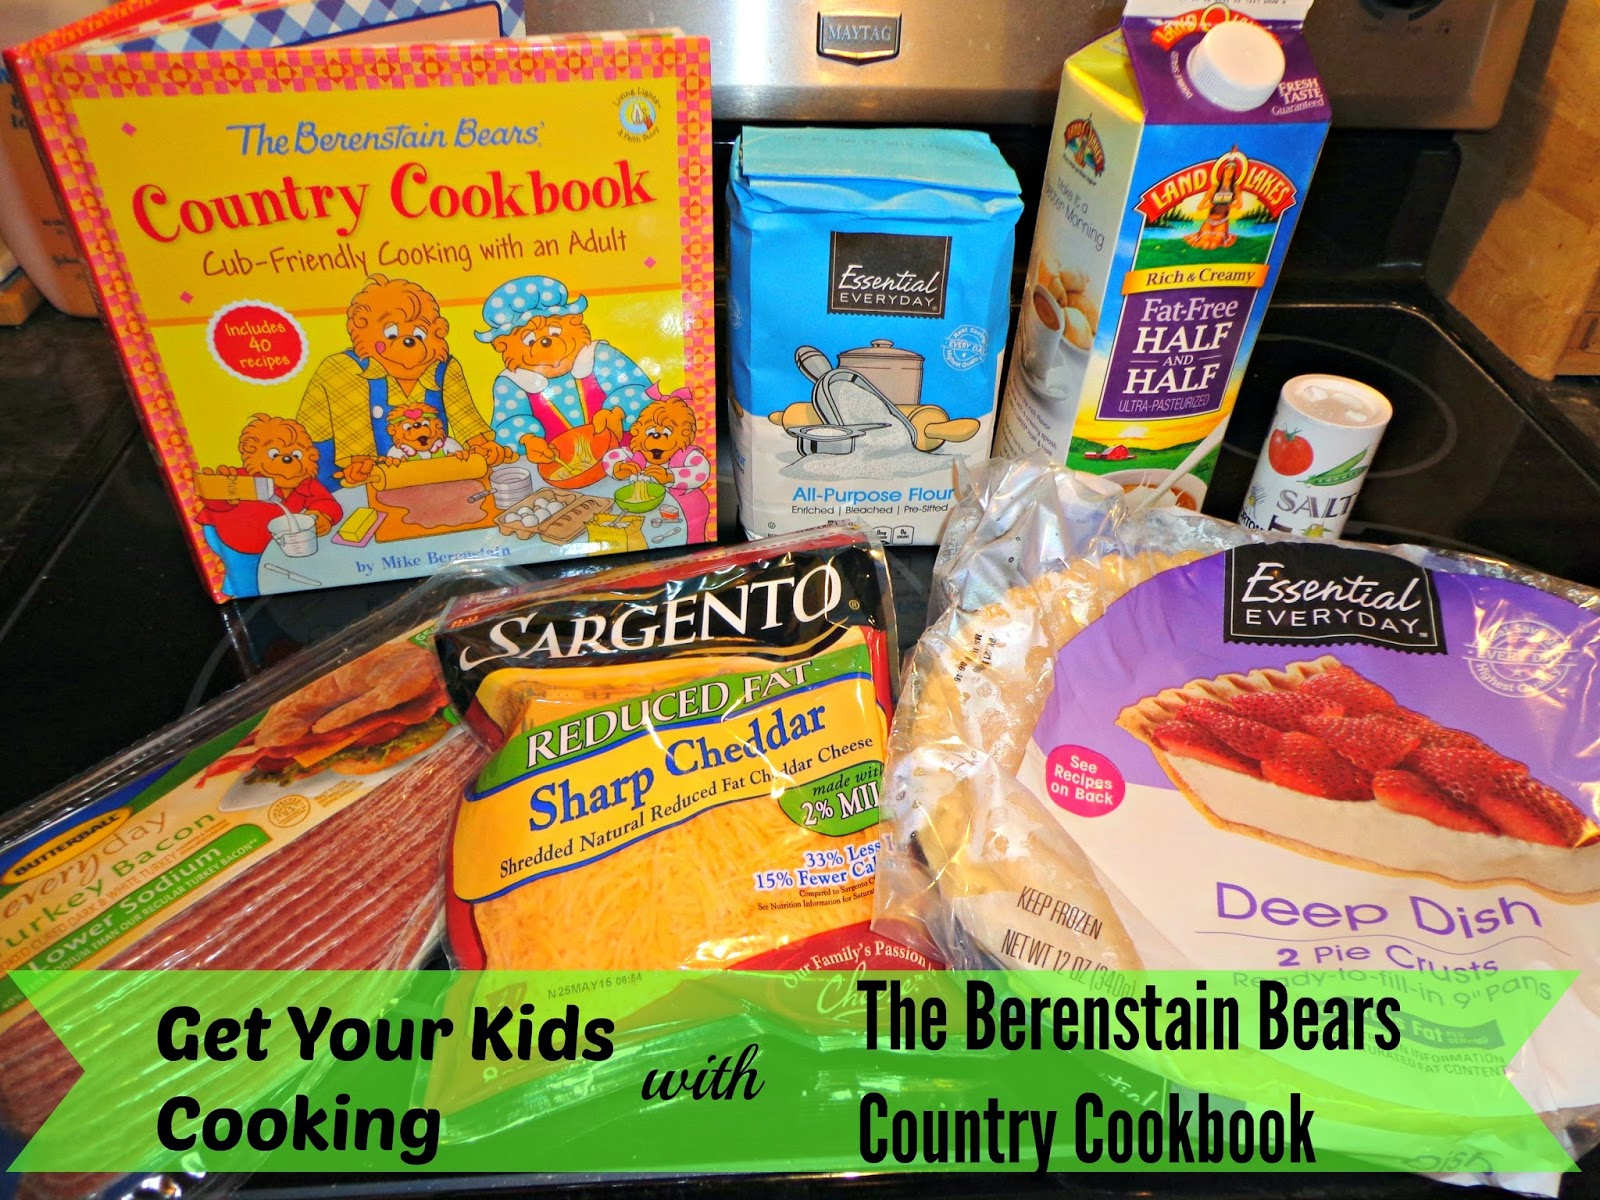 The Berenstain Bears Country Cookbook: Cub-friendly cooking with an Adult